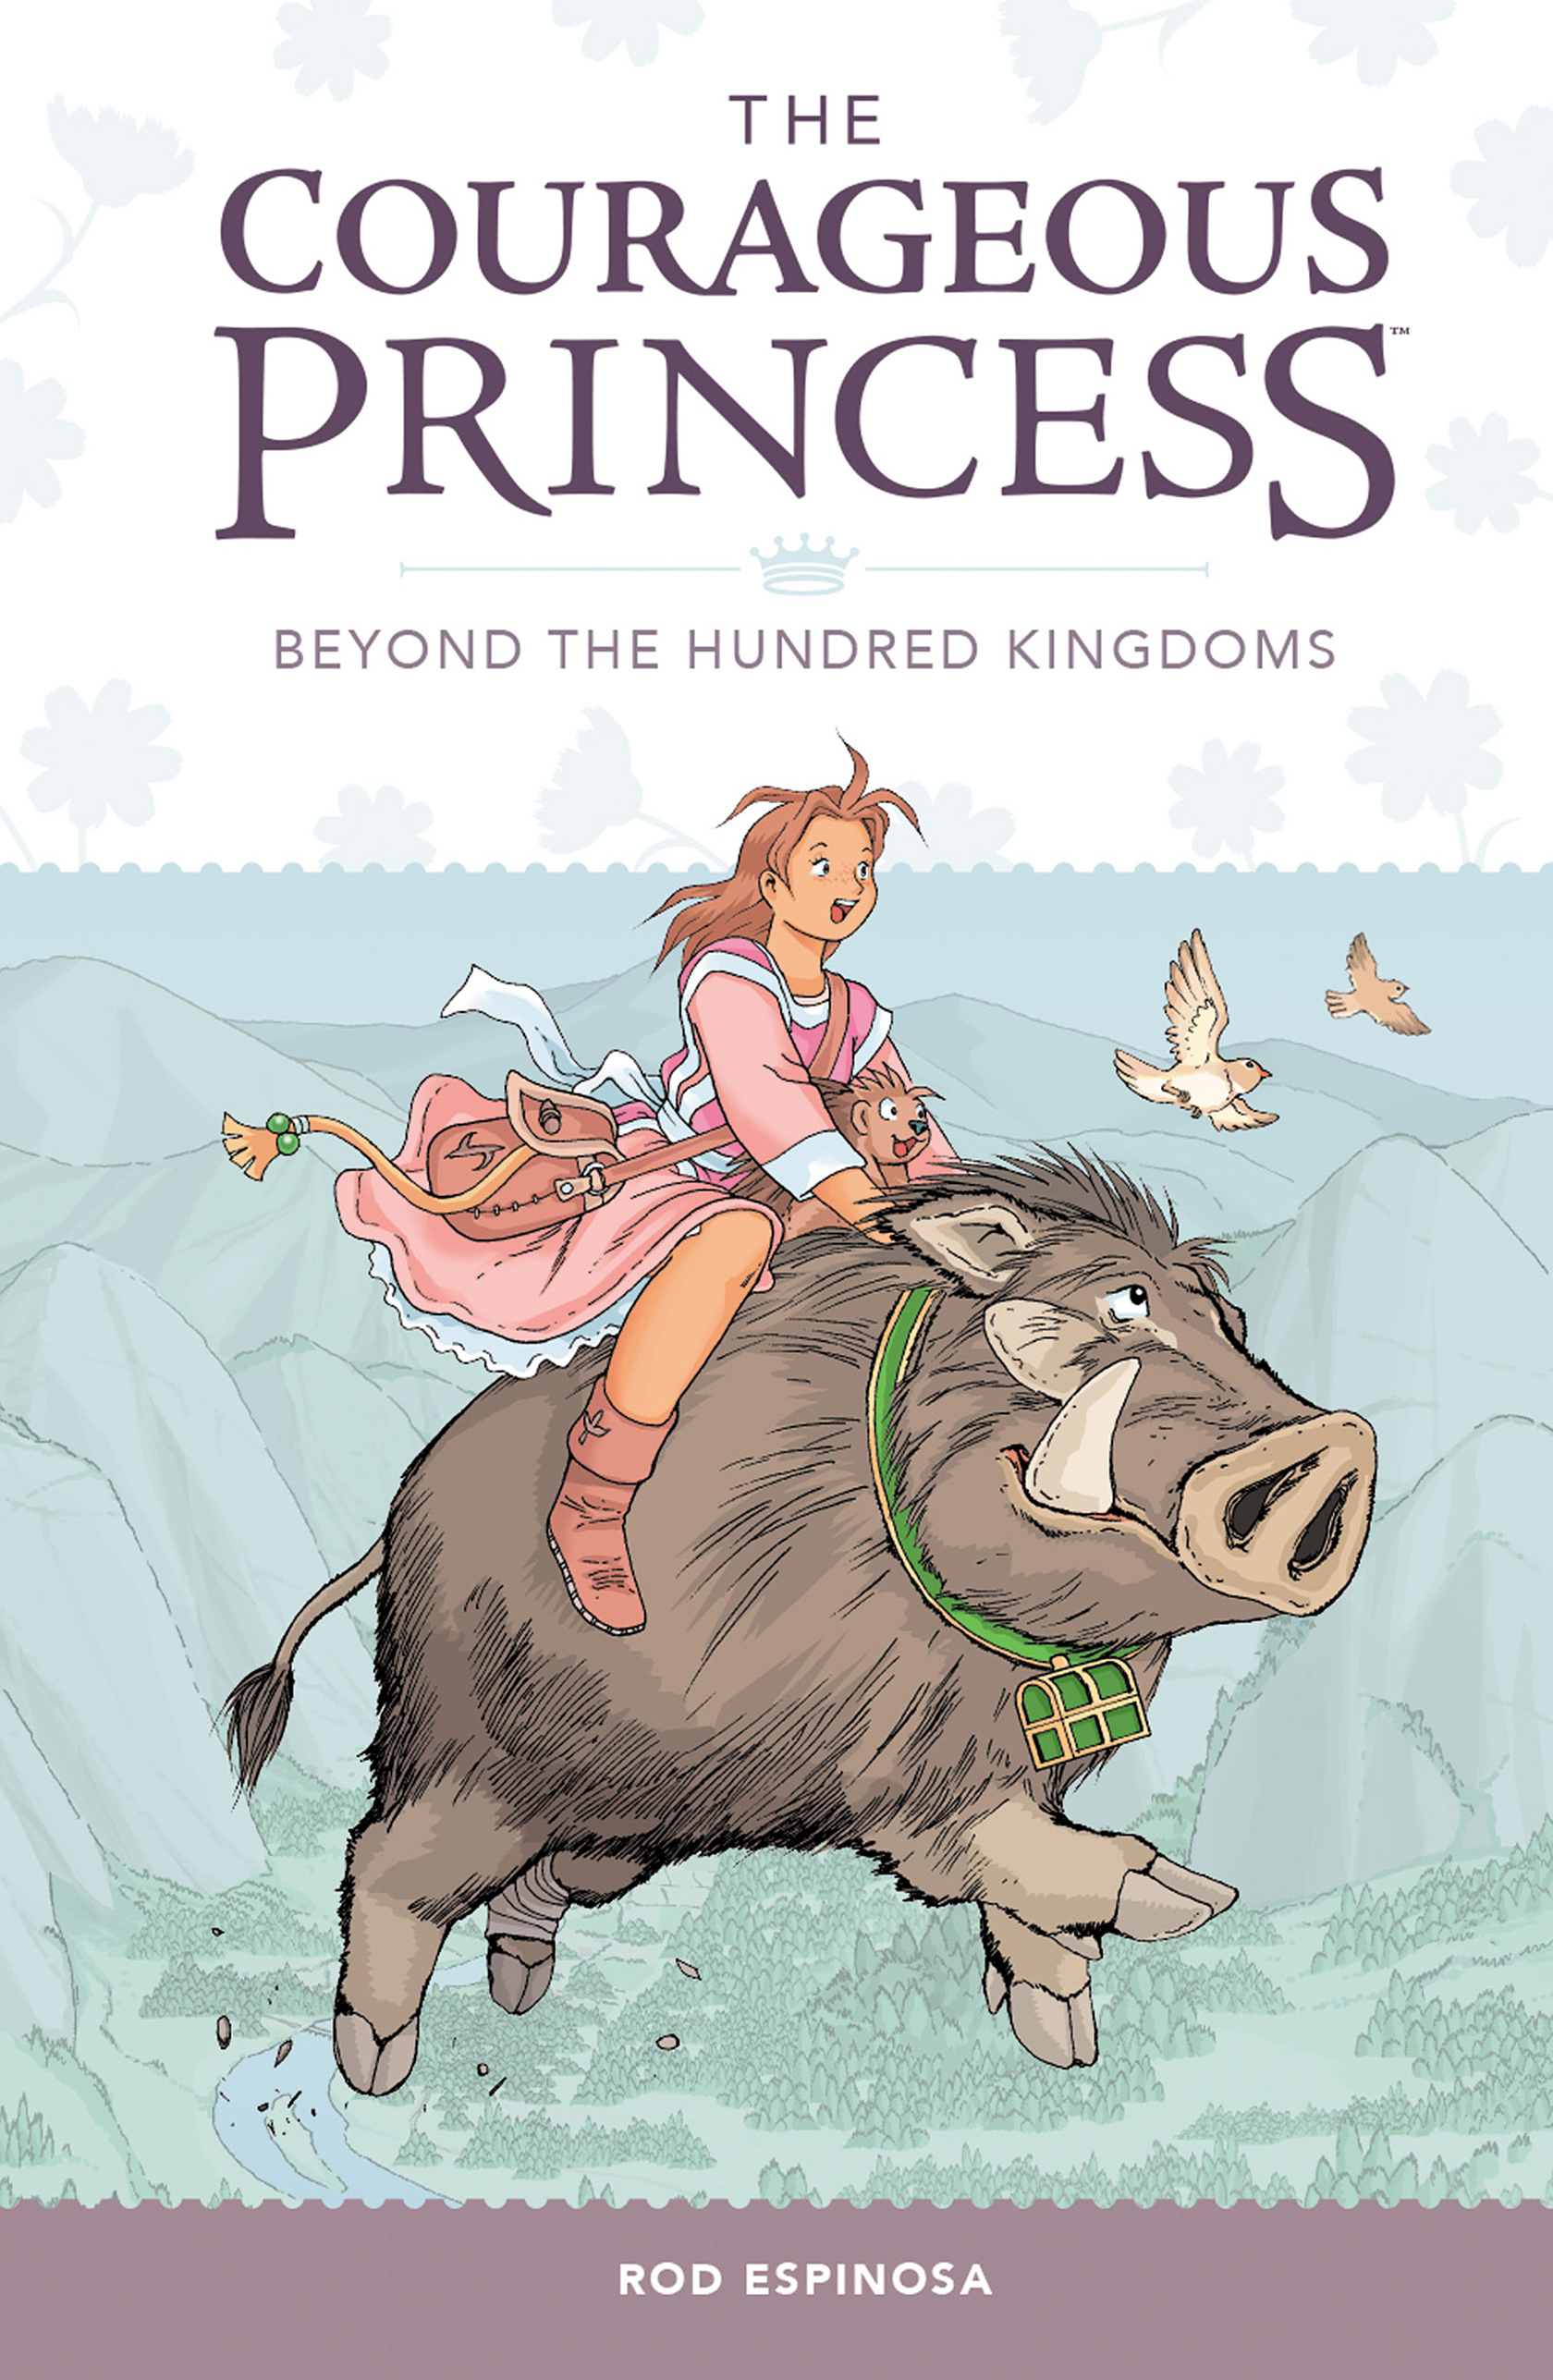 Read online Courageous Princess comic -  Issue # TPB 1 - 1